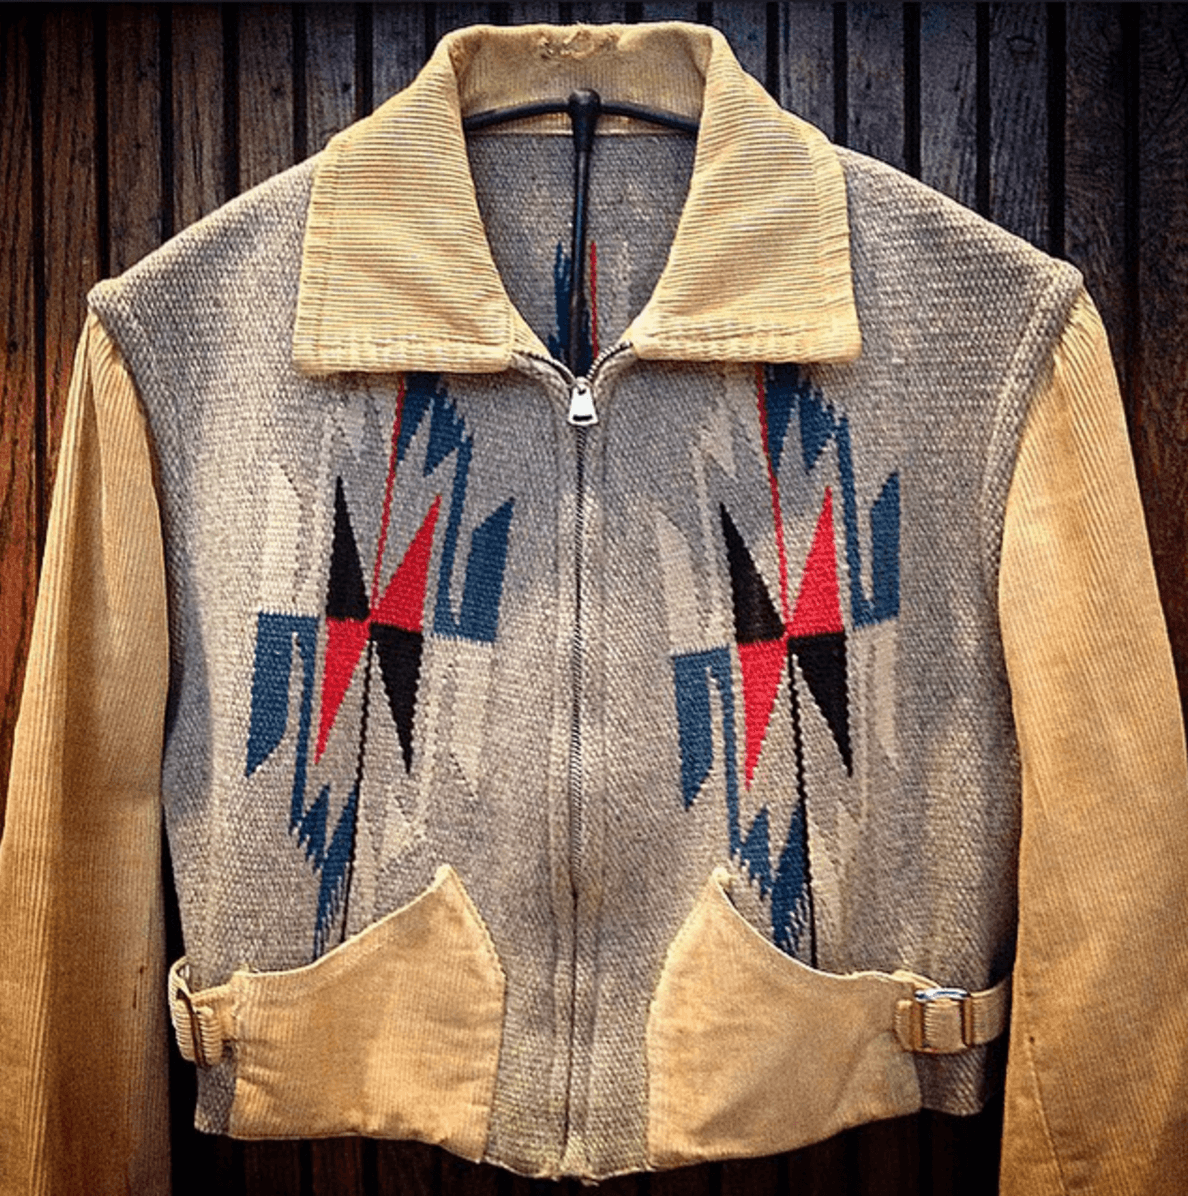 Shop Ladies and Gents Stock Vintage Jacket